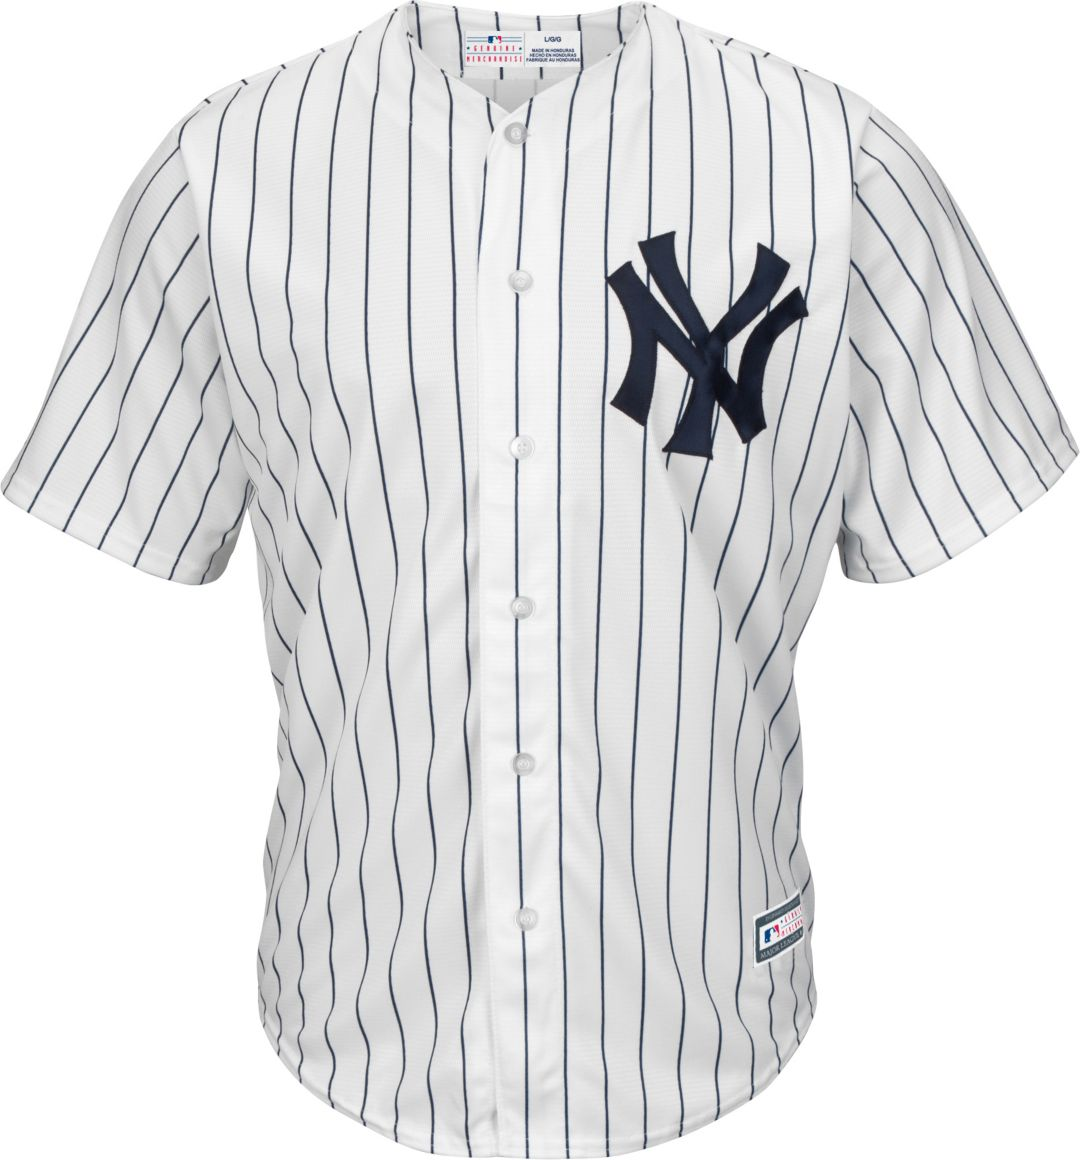 competitive price e48ad e748d Youth Replica New York Yankees Gary Sanchez #24 Home White Jersey